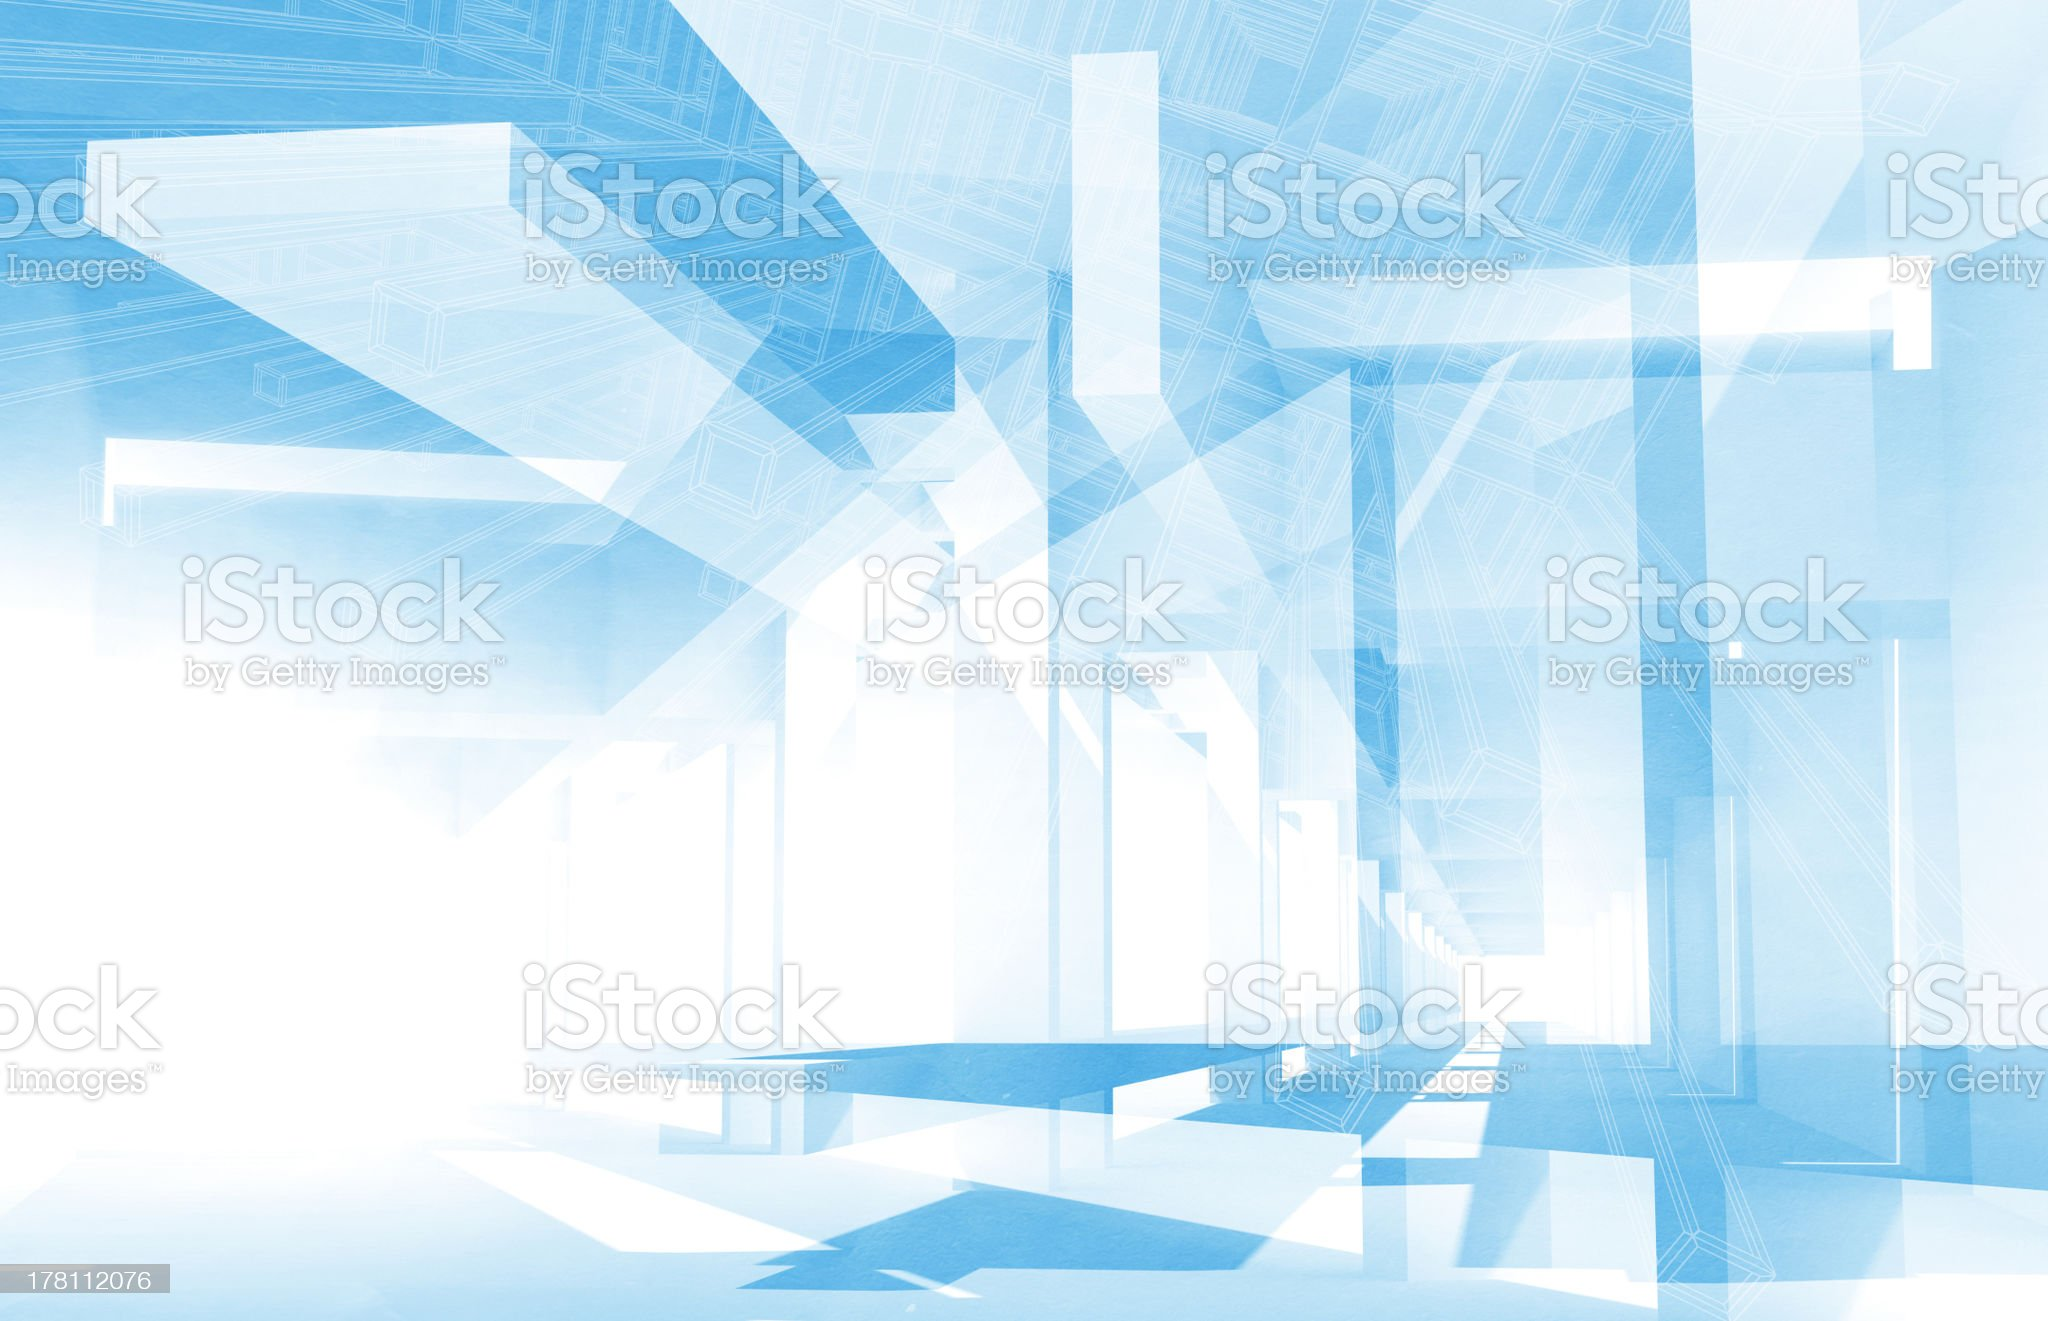 Abstract architecture 3d background with blue constructions and drawings royalty-free stock photo